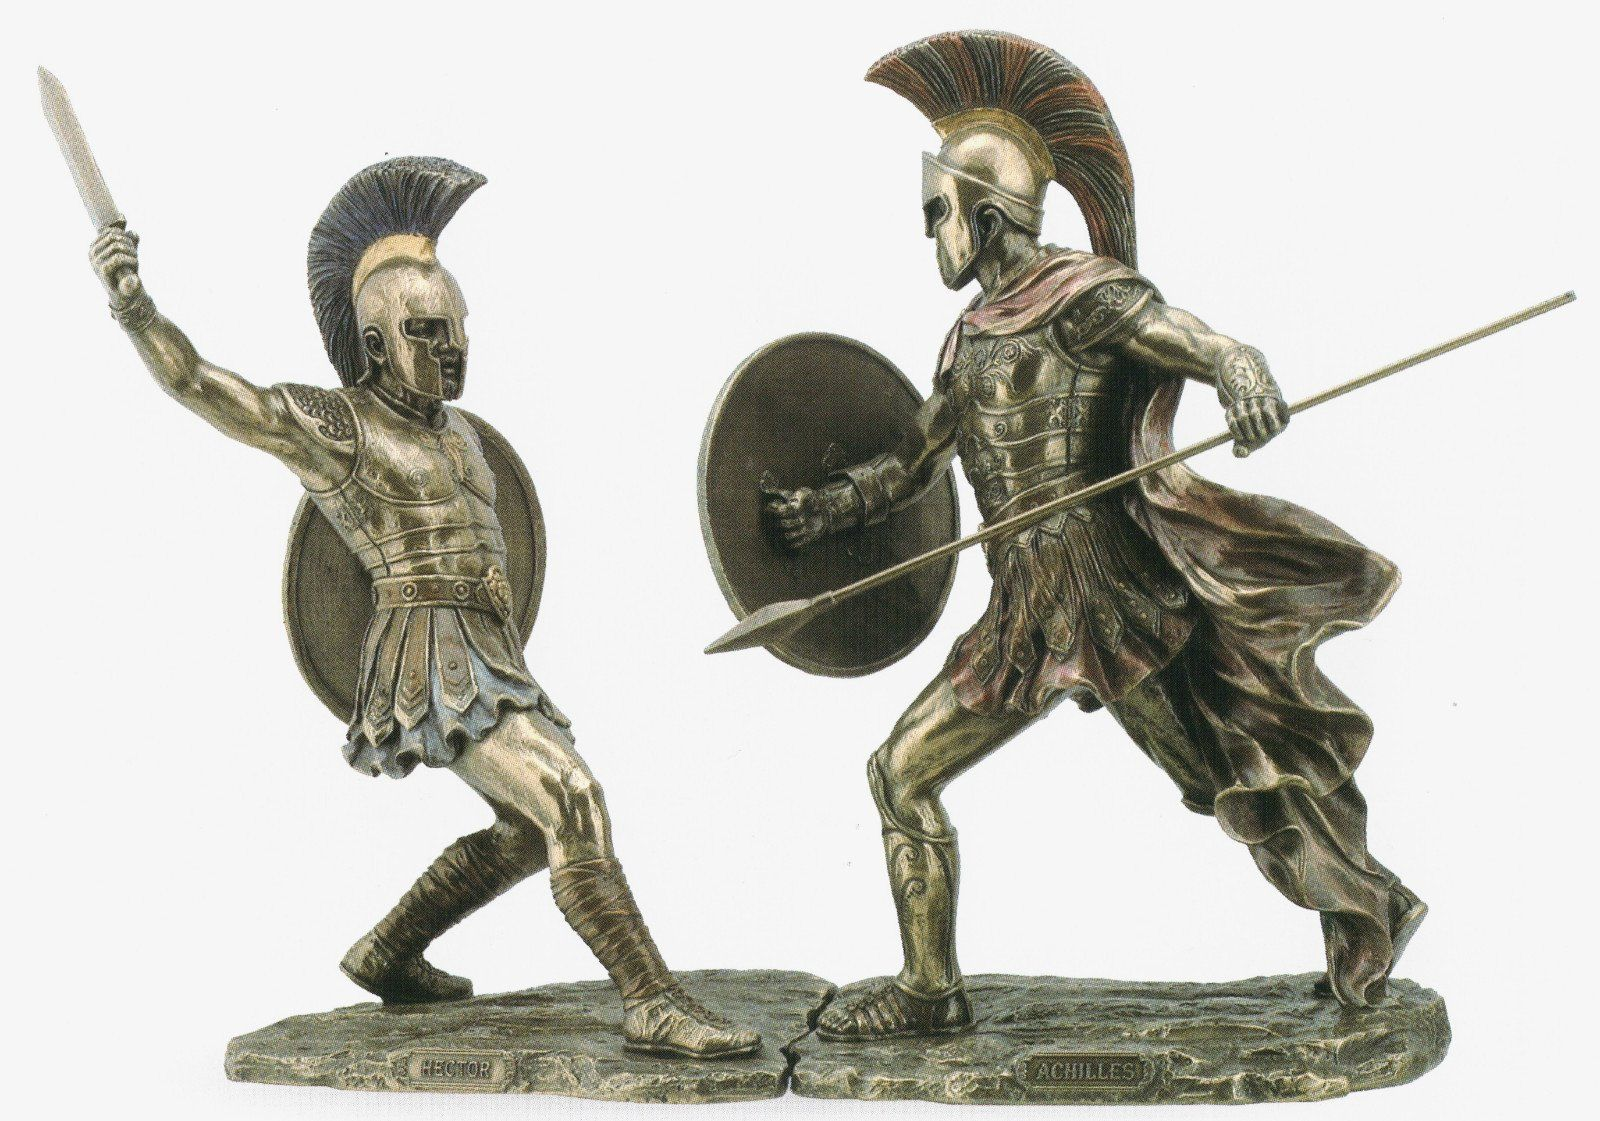 Amazon.com - Achilles & Hector Unleashed Battle of Troy ...